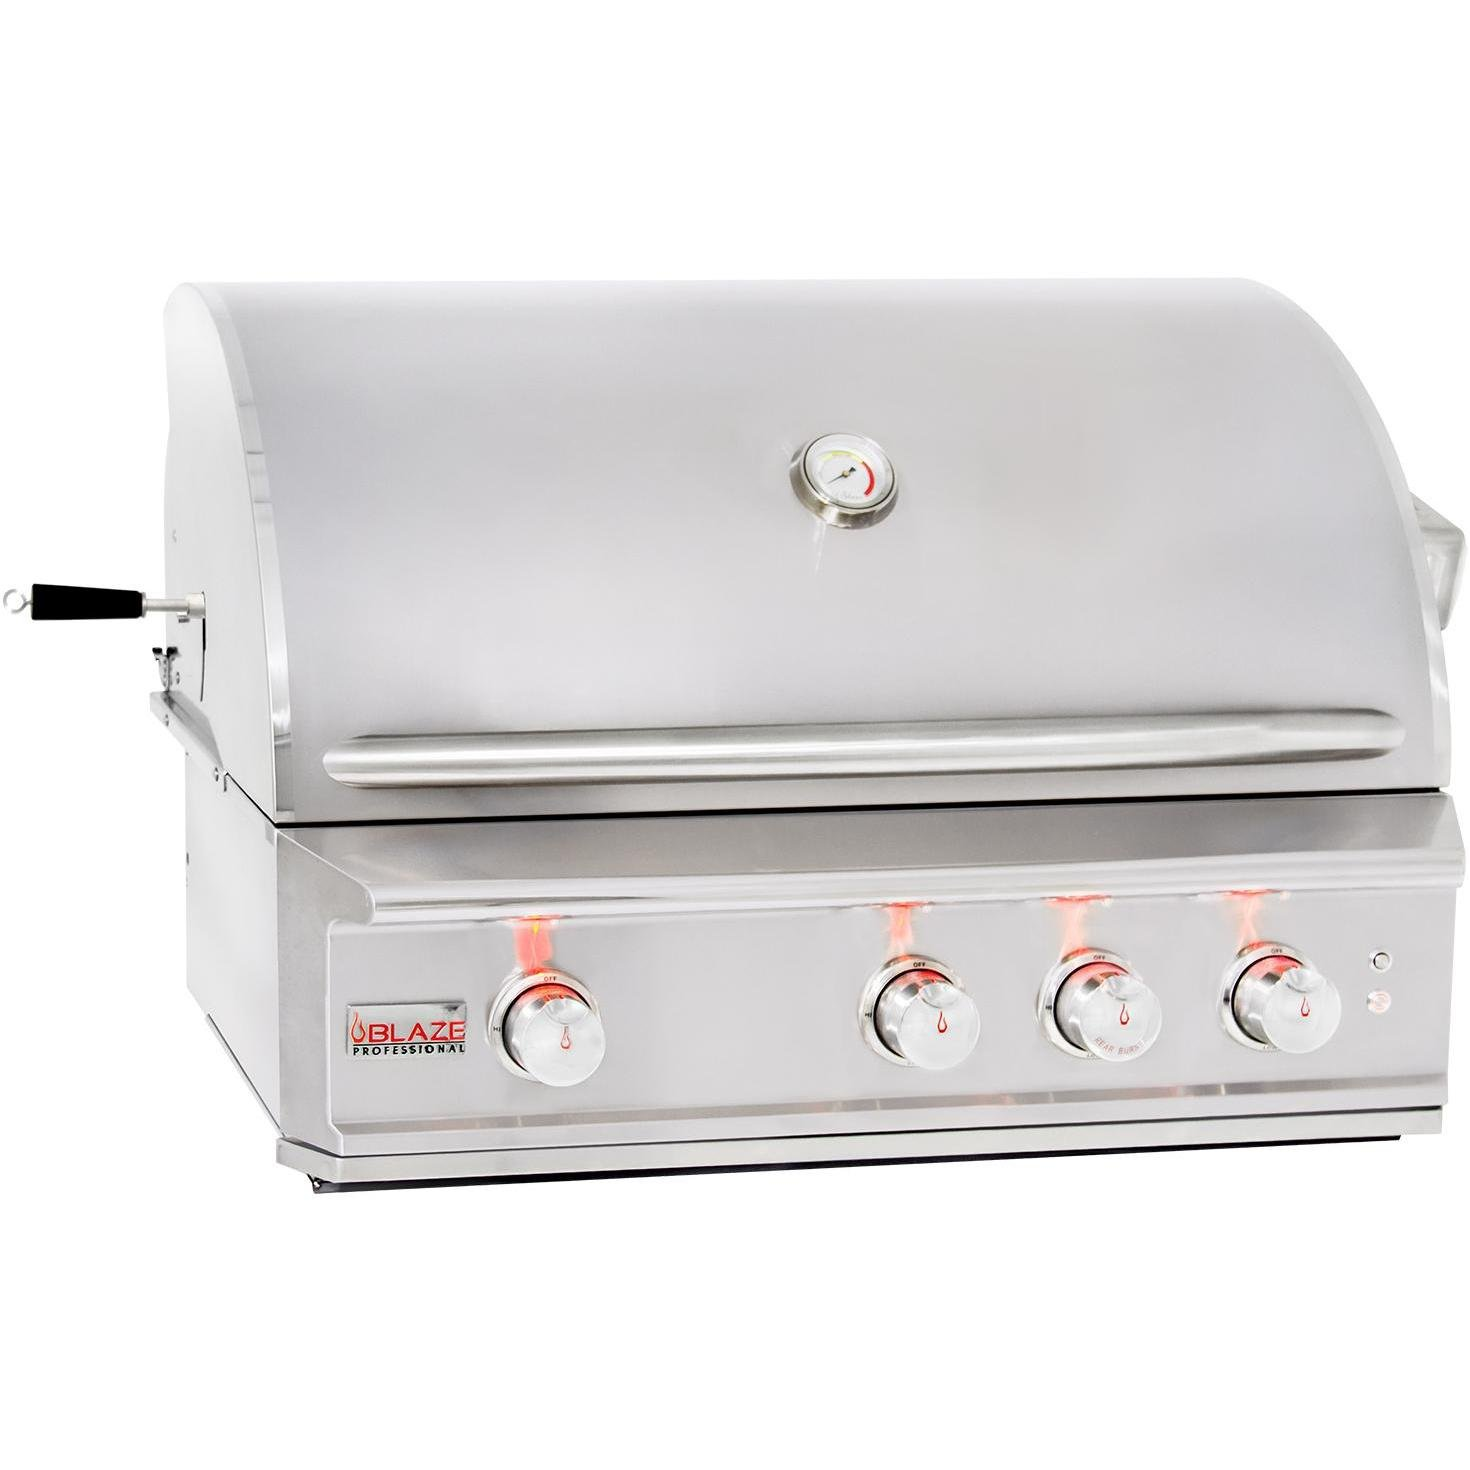 34'' Professional Grill with 3 Burners Fuel Type: Propane